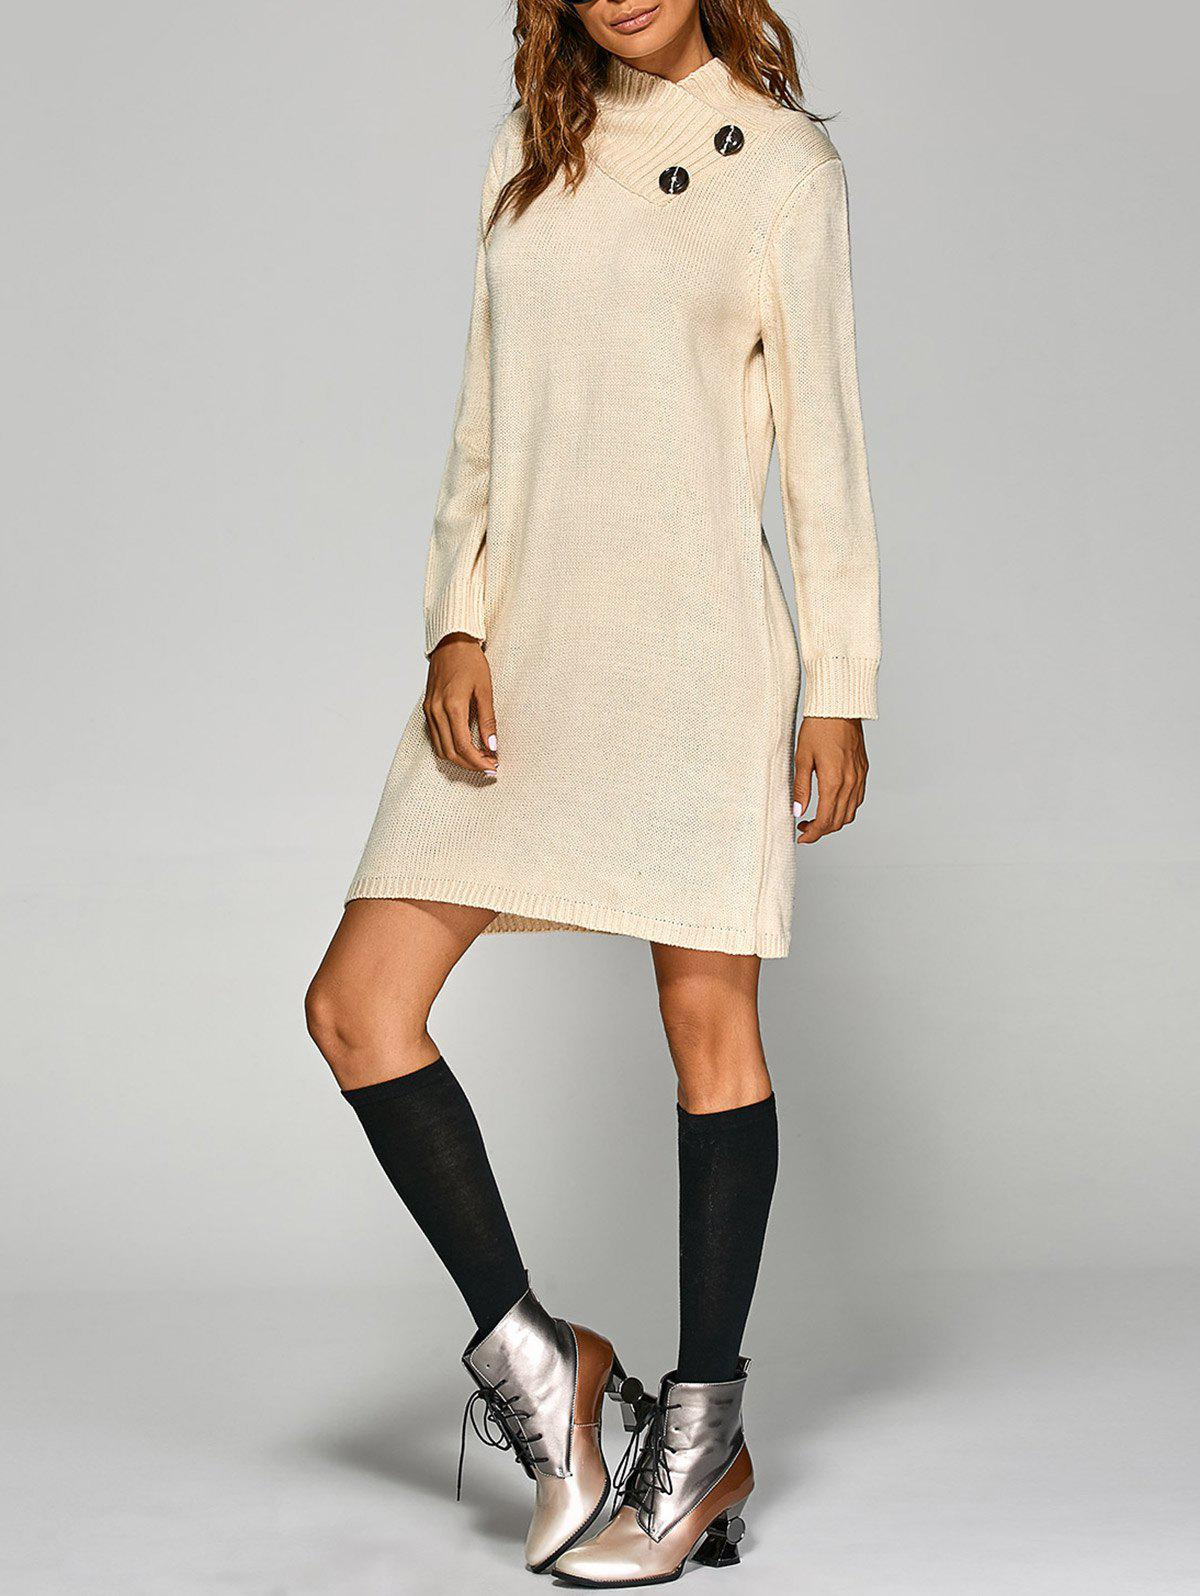 Store Tunic Knitted Long Sleeve Dress